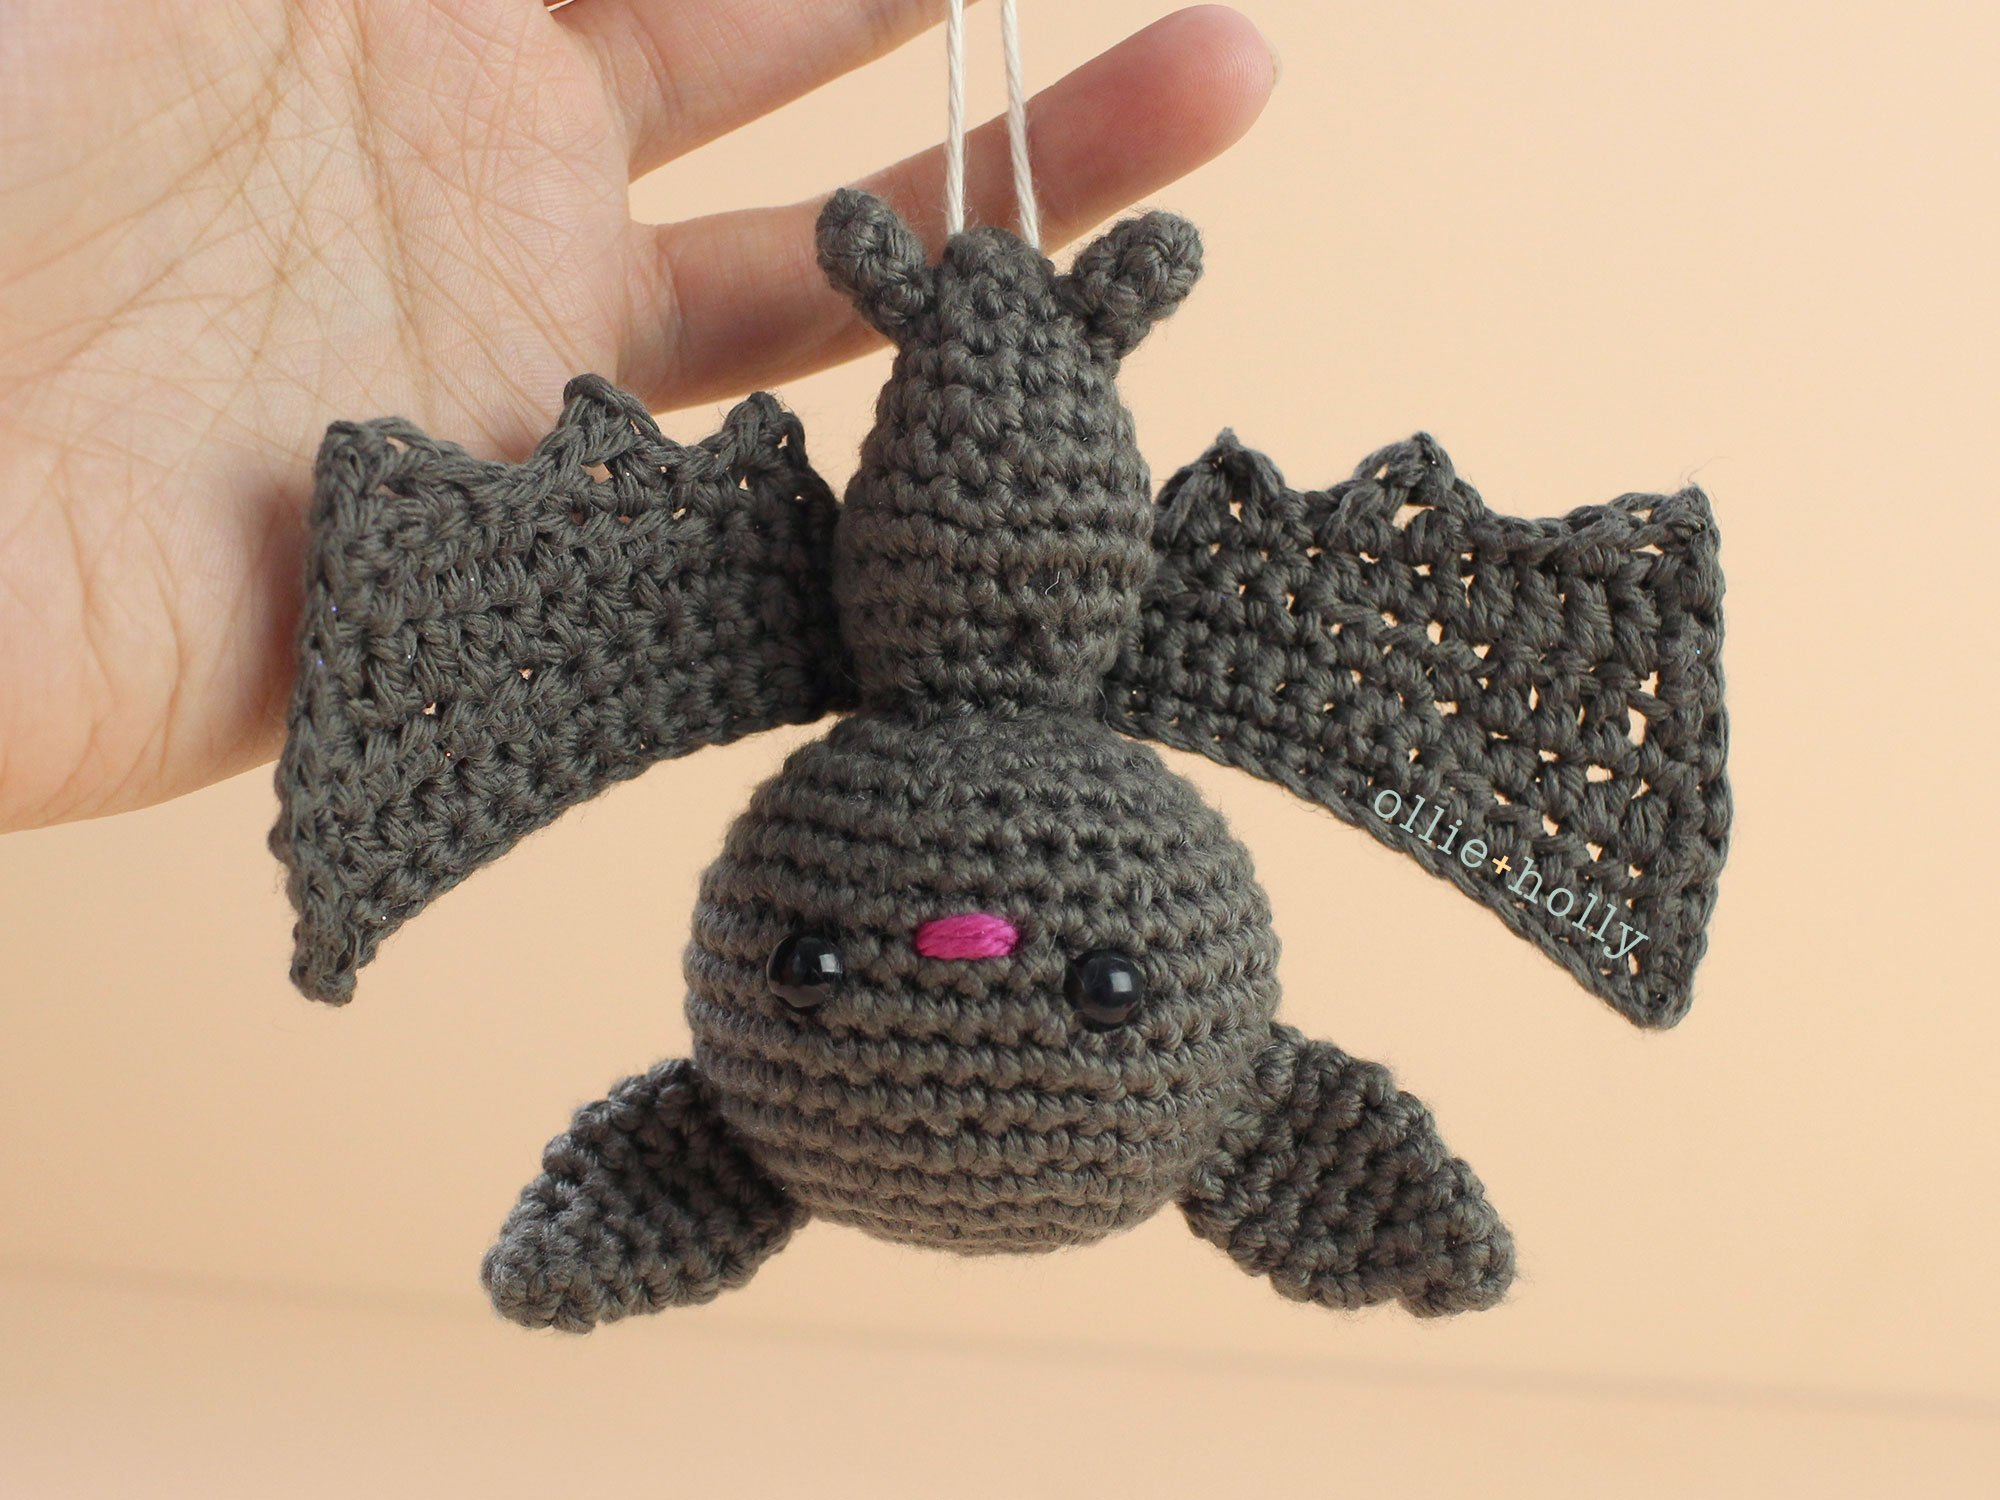 Amigurumi Today - Free amigurumi patterns and amigurumi tutorials | 1500x2000